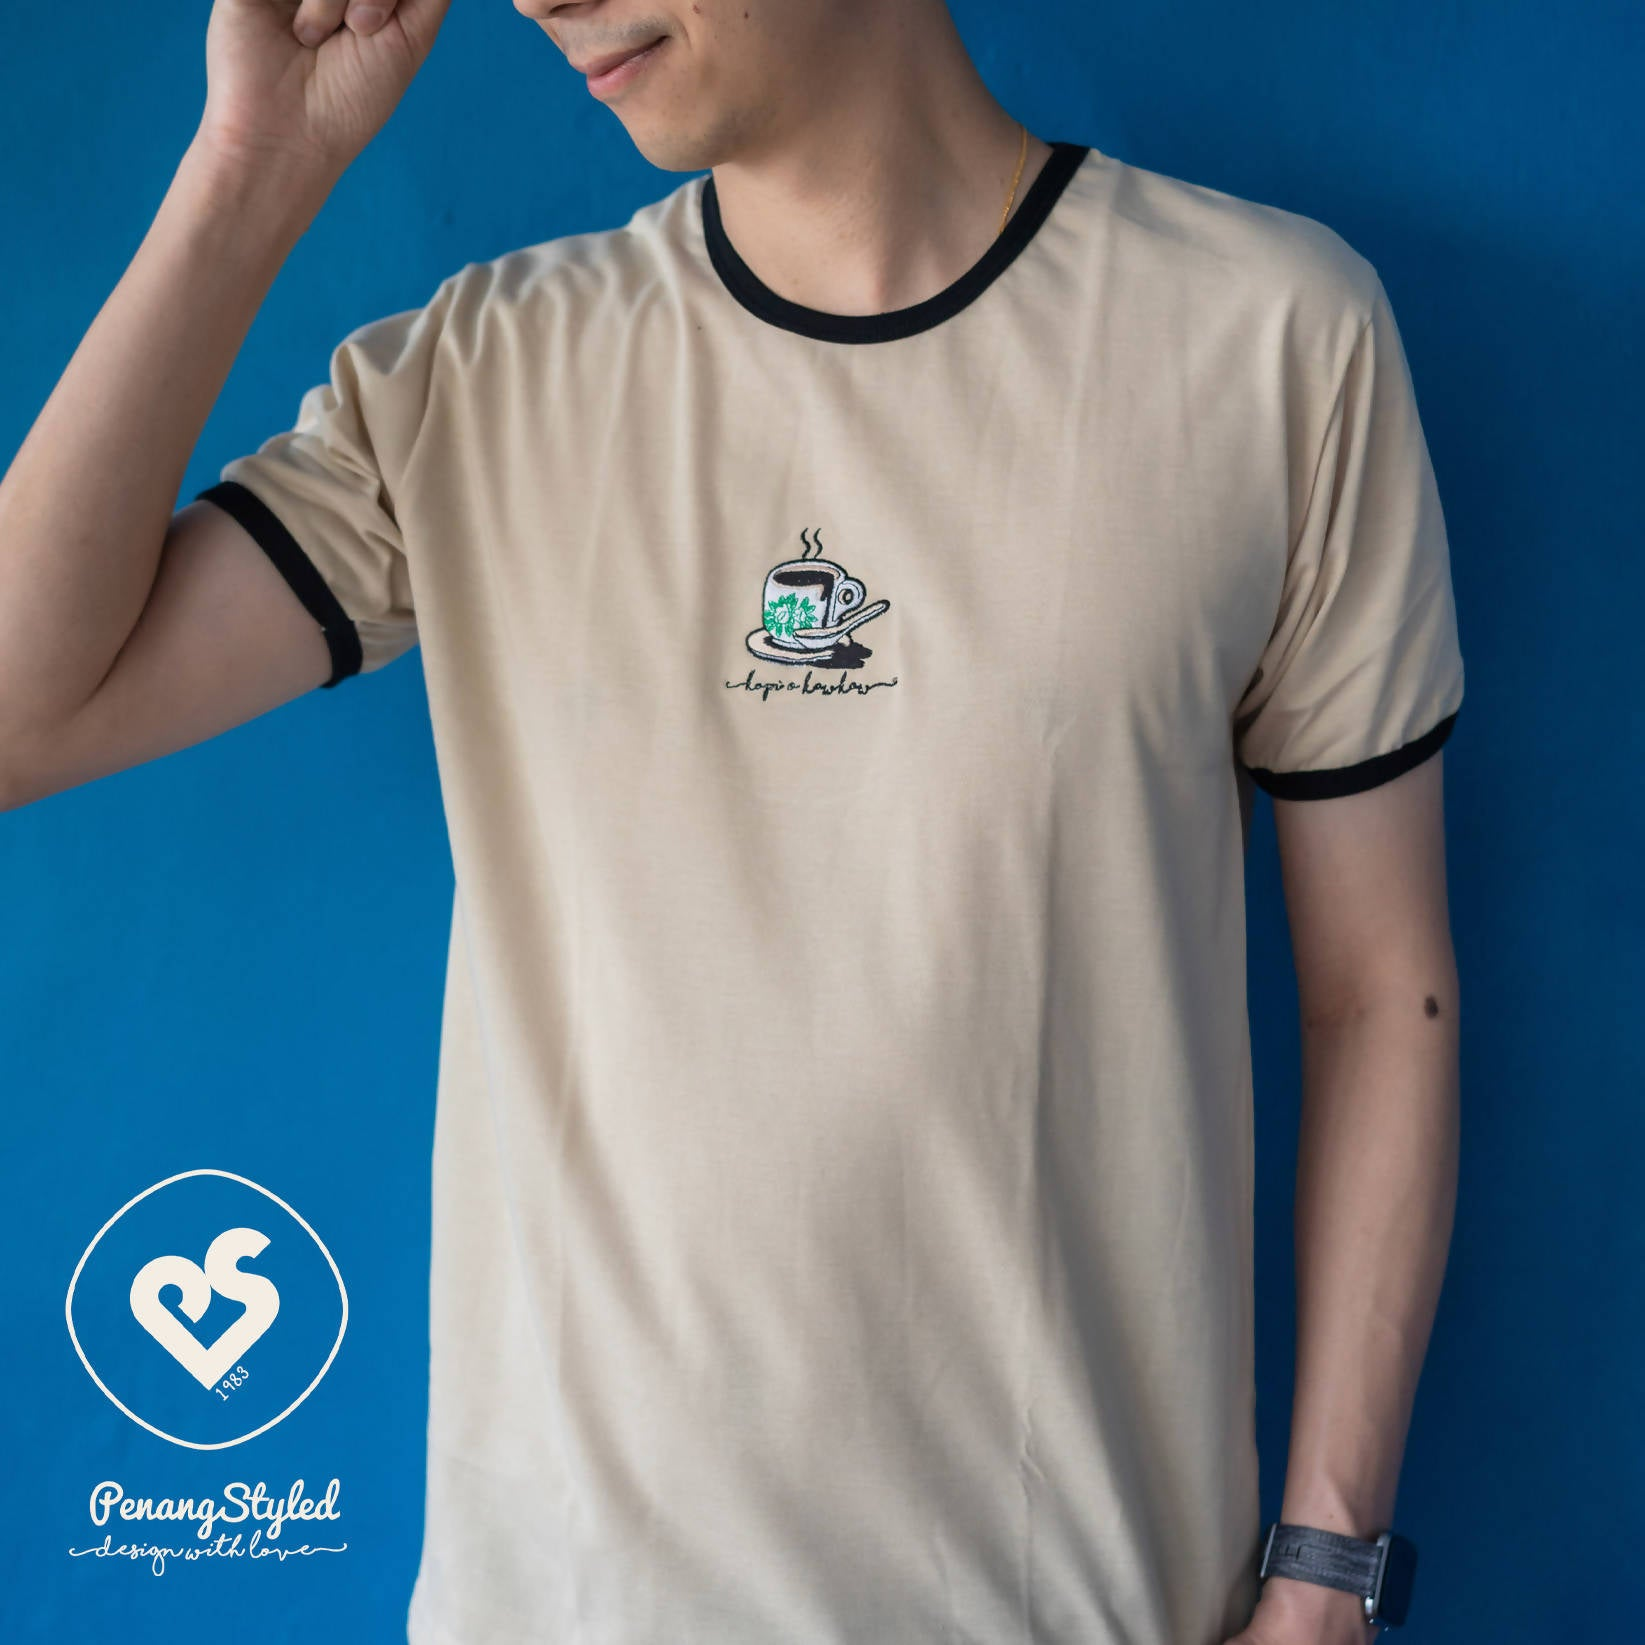 Penang Styled Kopi O Embroidery Round Neck Short Sleeve Cotton Khaki Black Ringer Tee